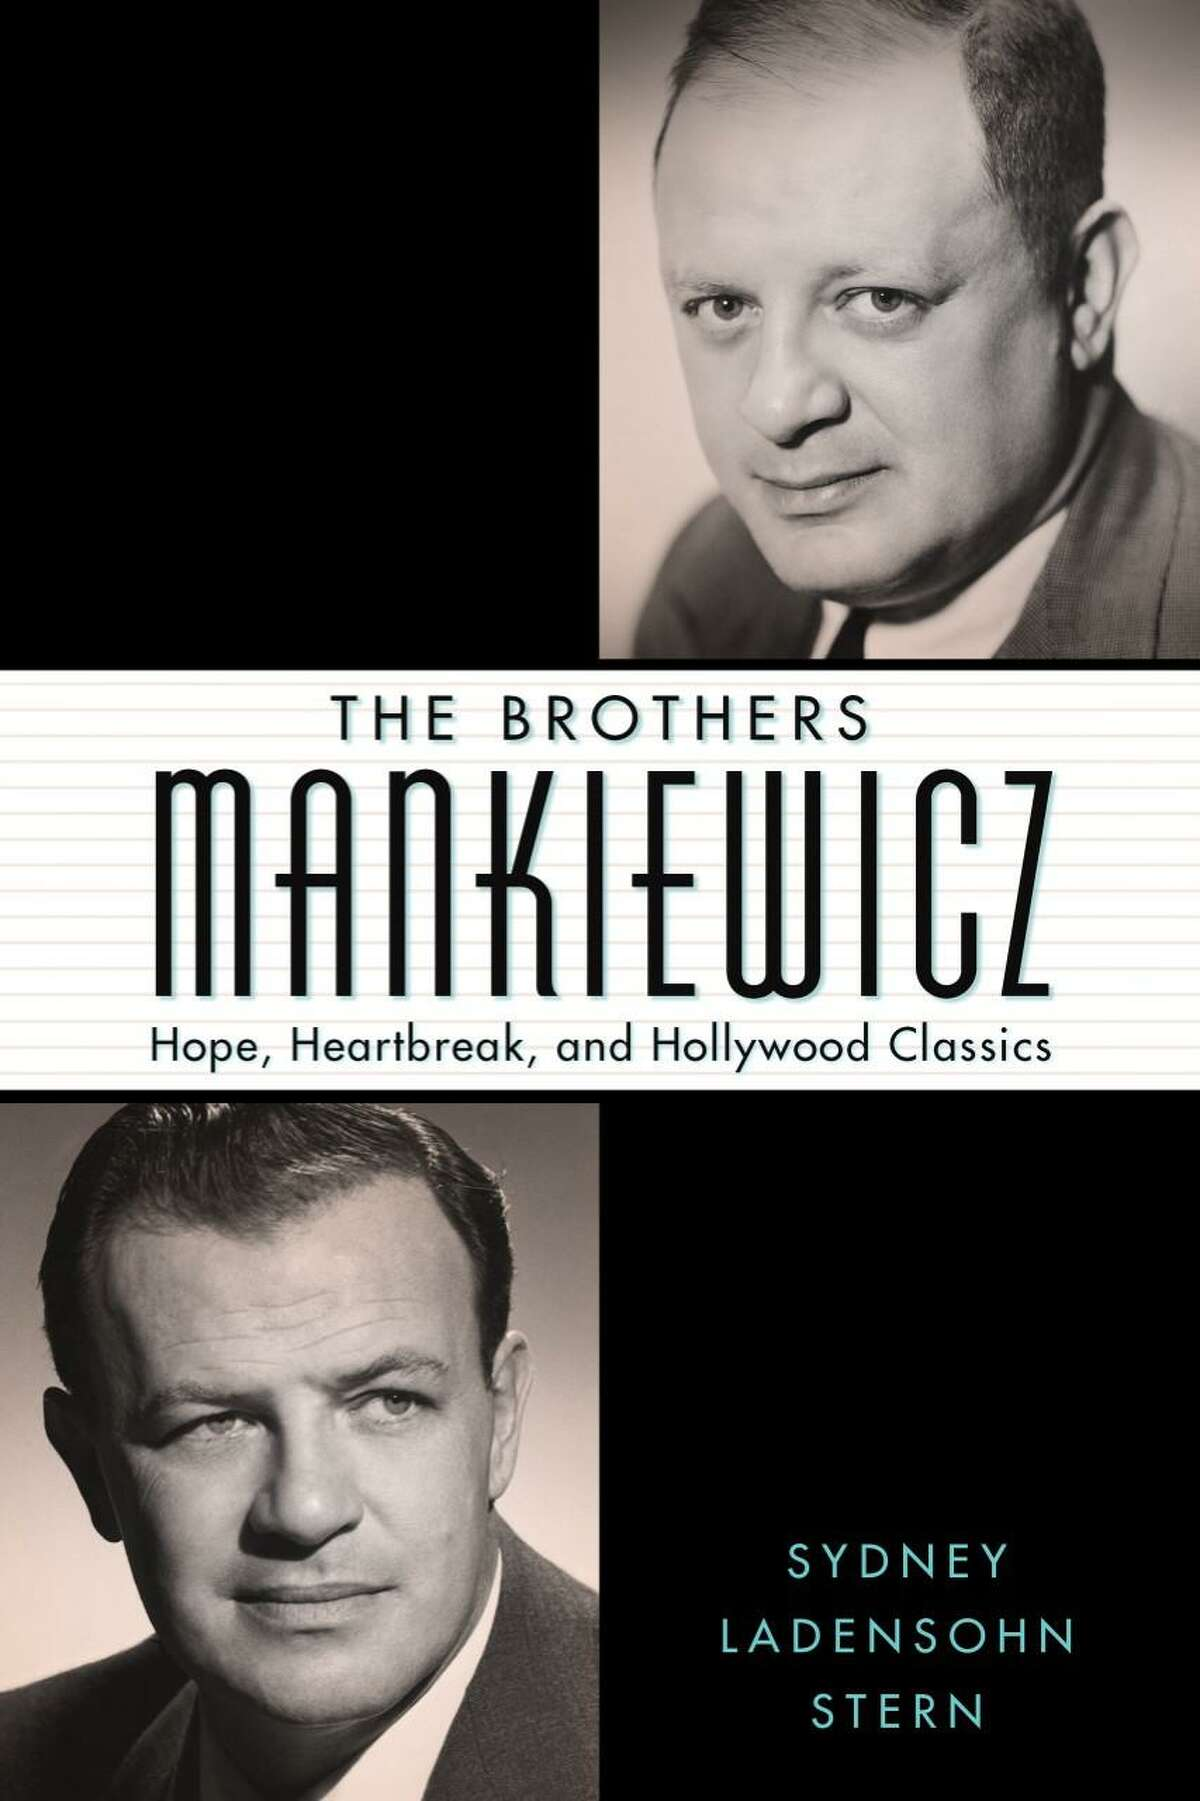 """Sydney Ladensohn Stern's new book is """"The Brothers Mankiewicz: Hope, Heartbreak and Hollywood Classics."""""""